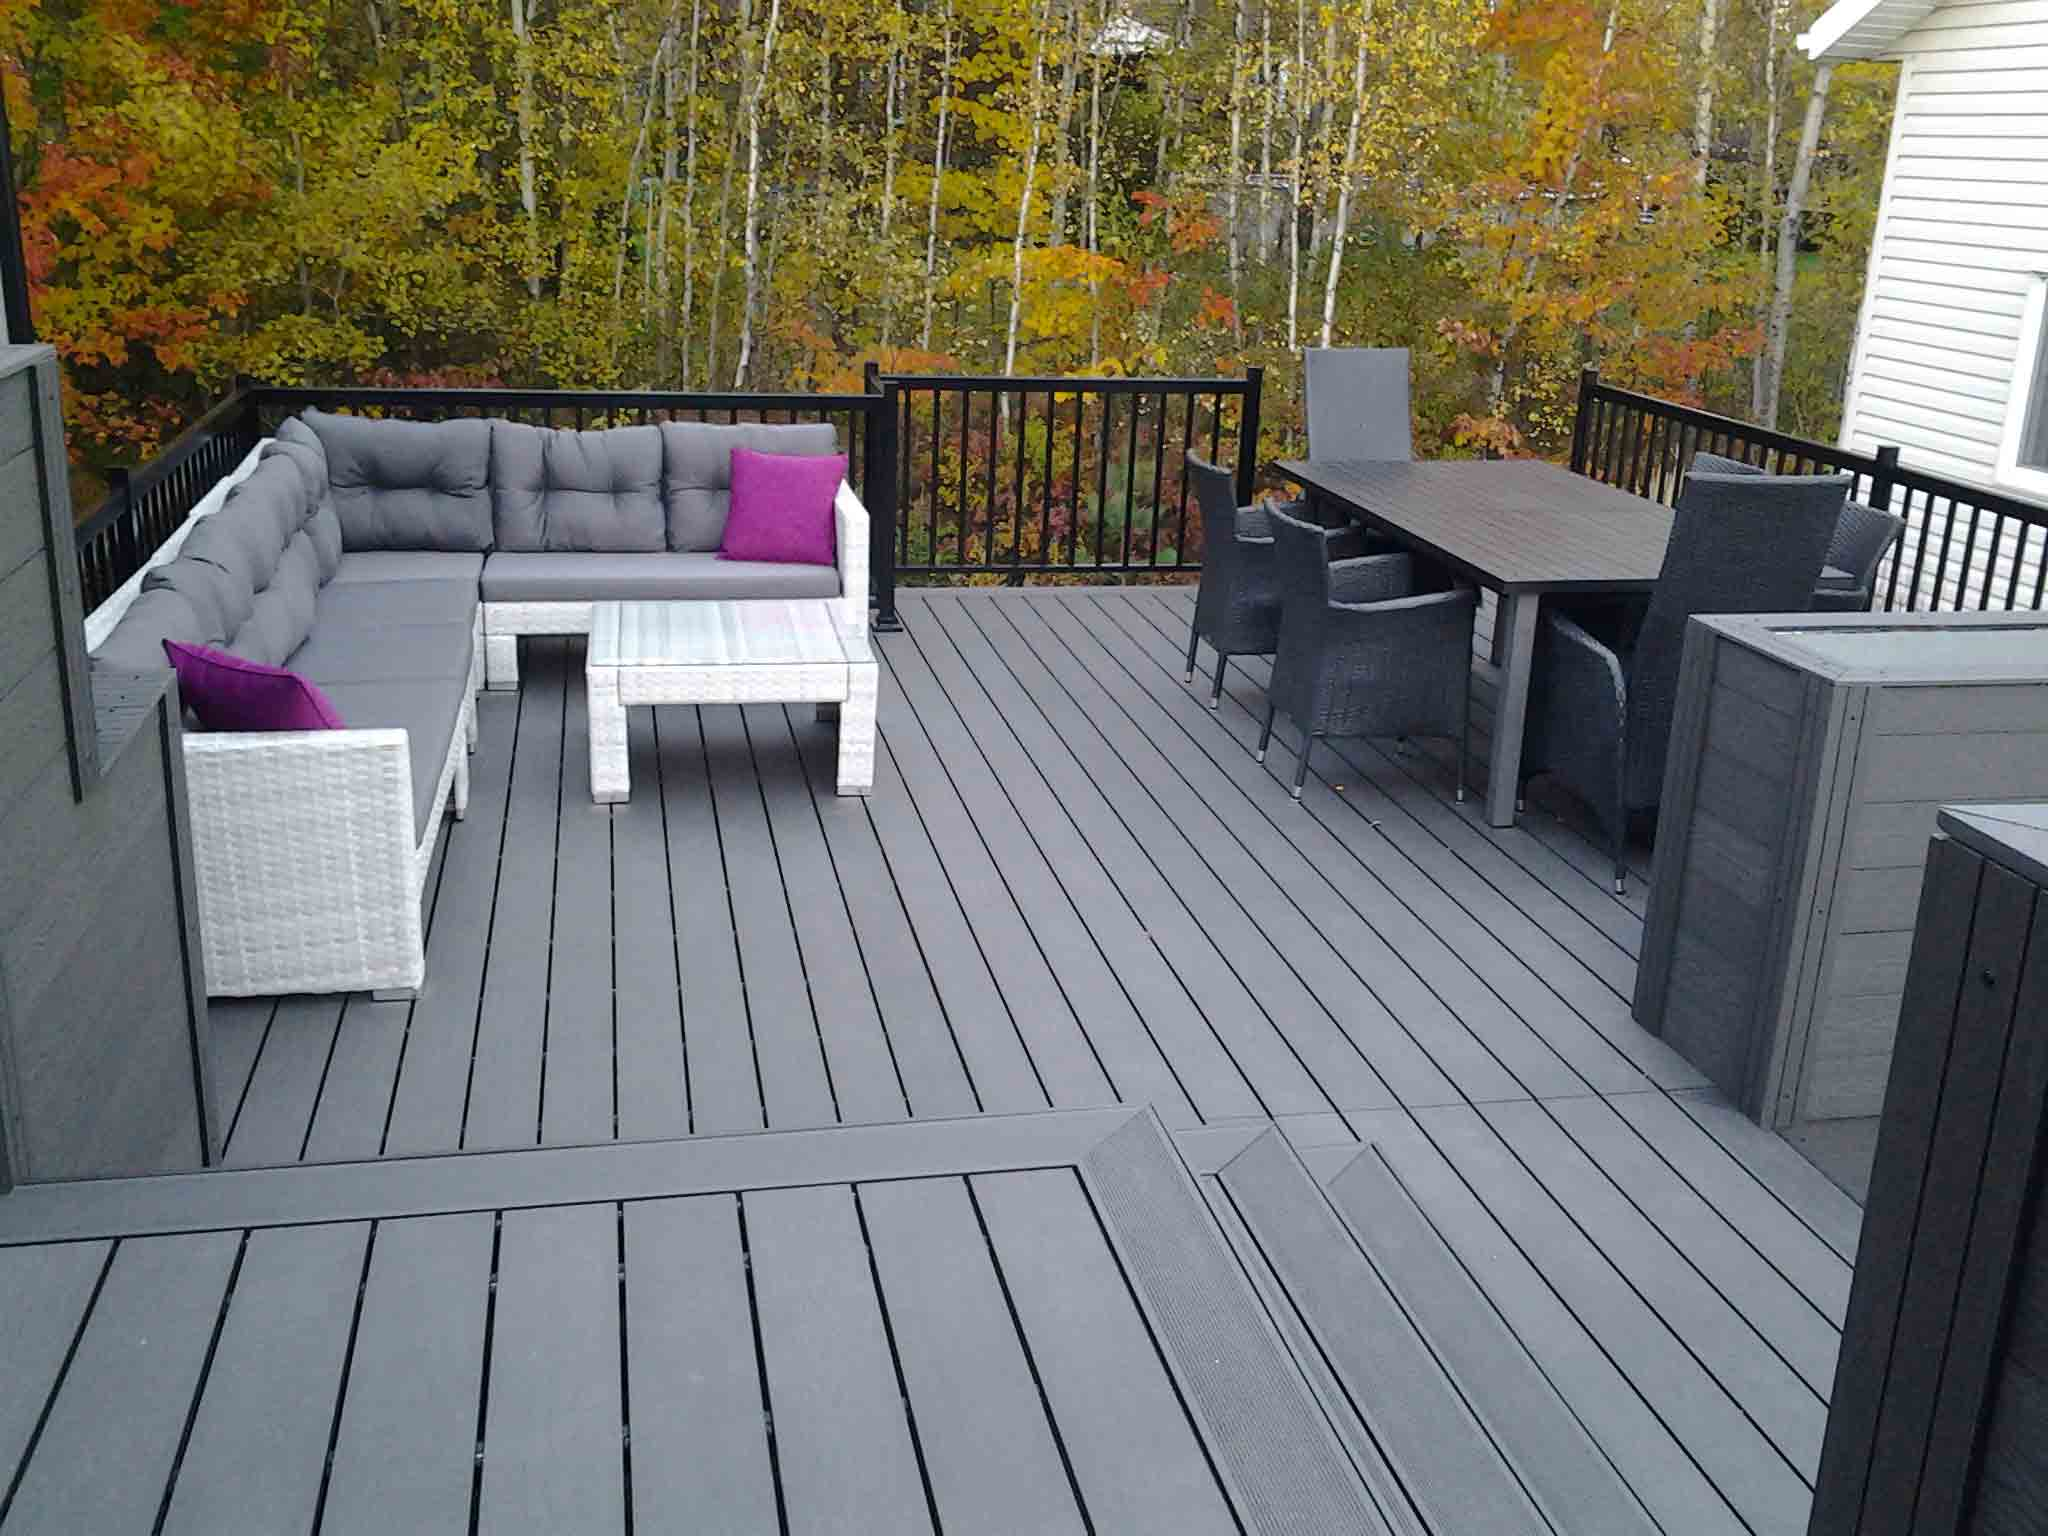 terrasse en composite ezdeck design patio en composite ezdeck design gsq. Black Bedroom Furniture Sets. Home Design Ideas